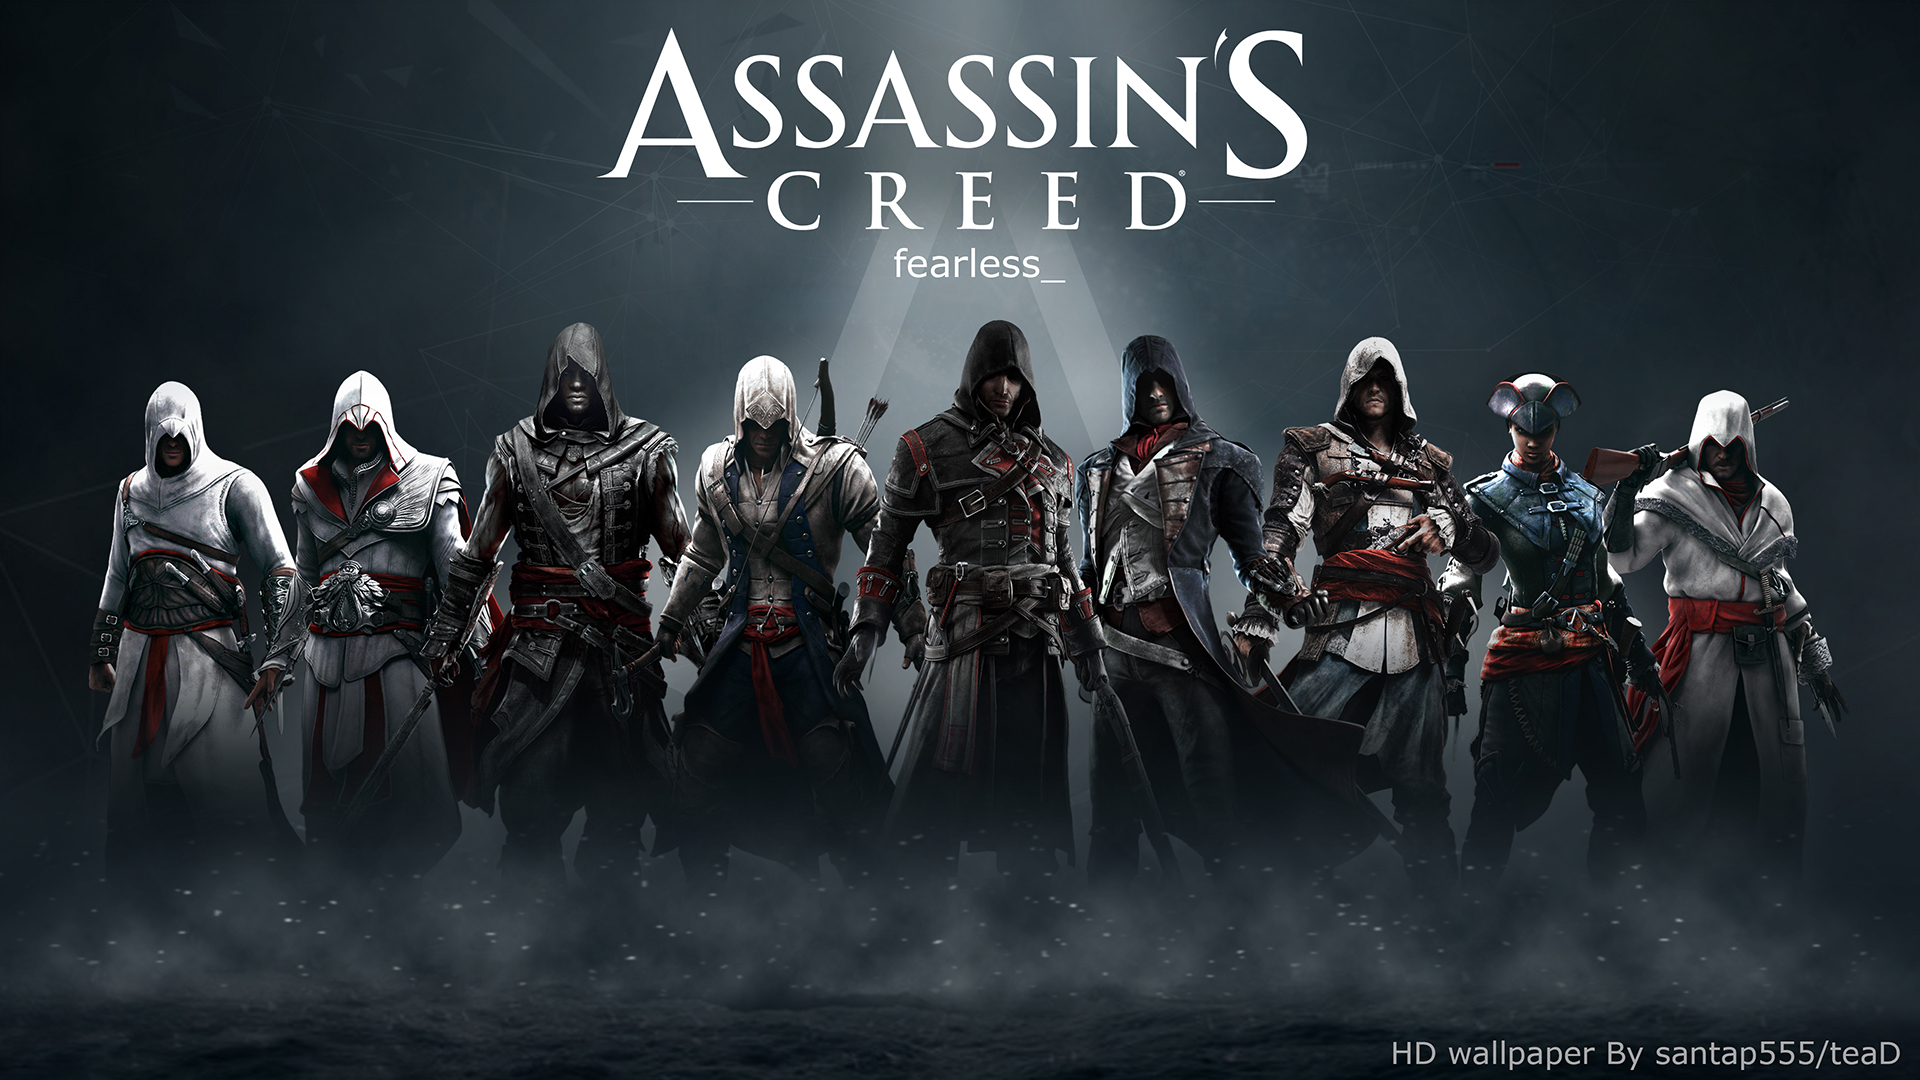 Assassins Creed HD wallpaper 2 by teaD by santap555 1920x1080